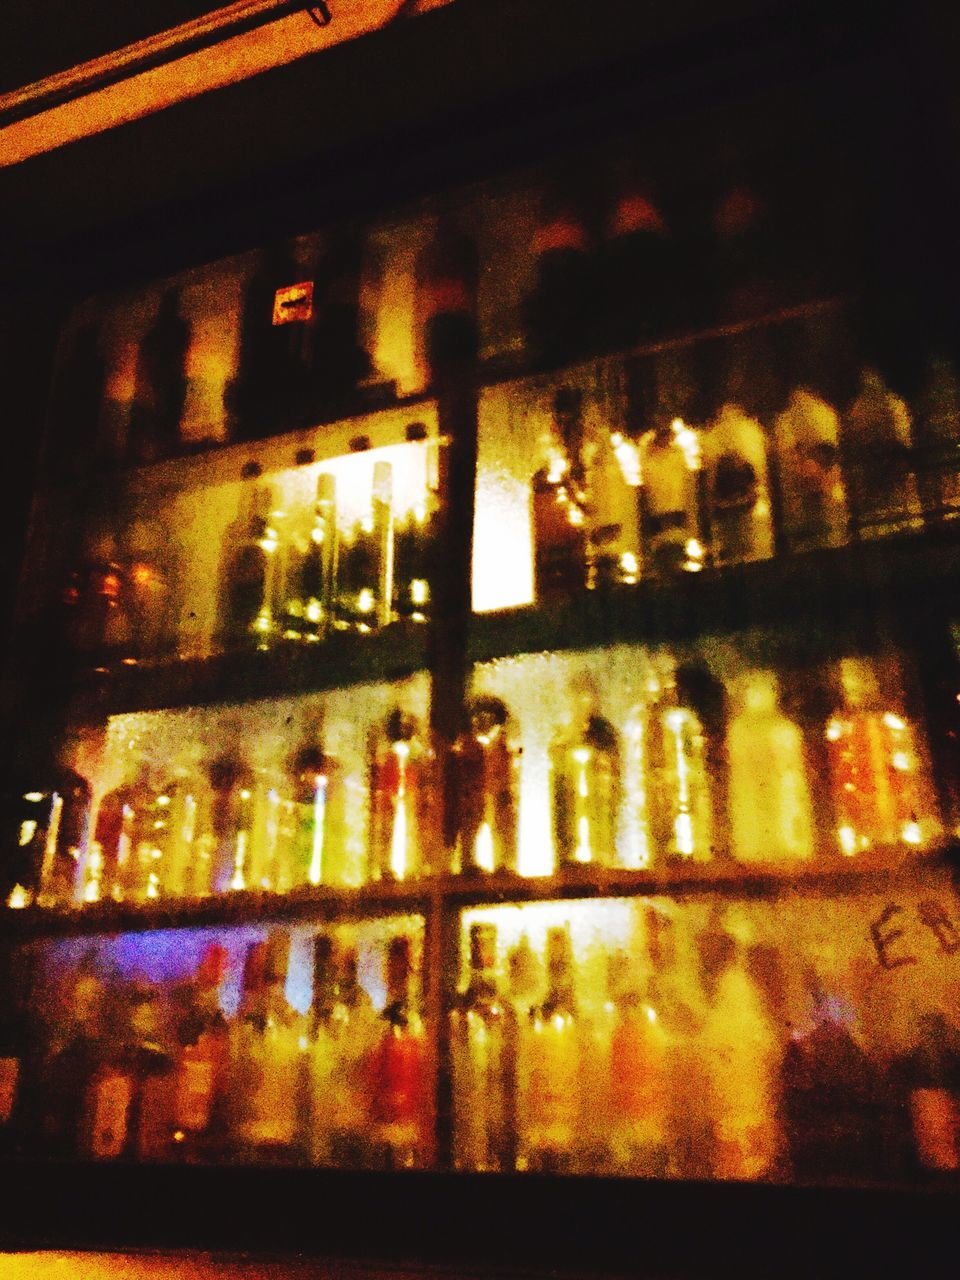 illuminated, night, alcohol, indoors, bottle, no people, wine, food and drink, shelf, close-up, drink, nightlife, architecture